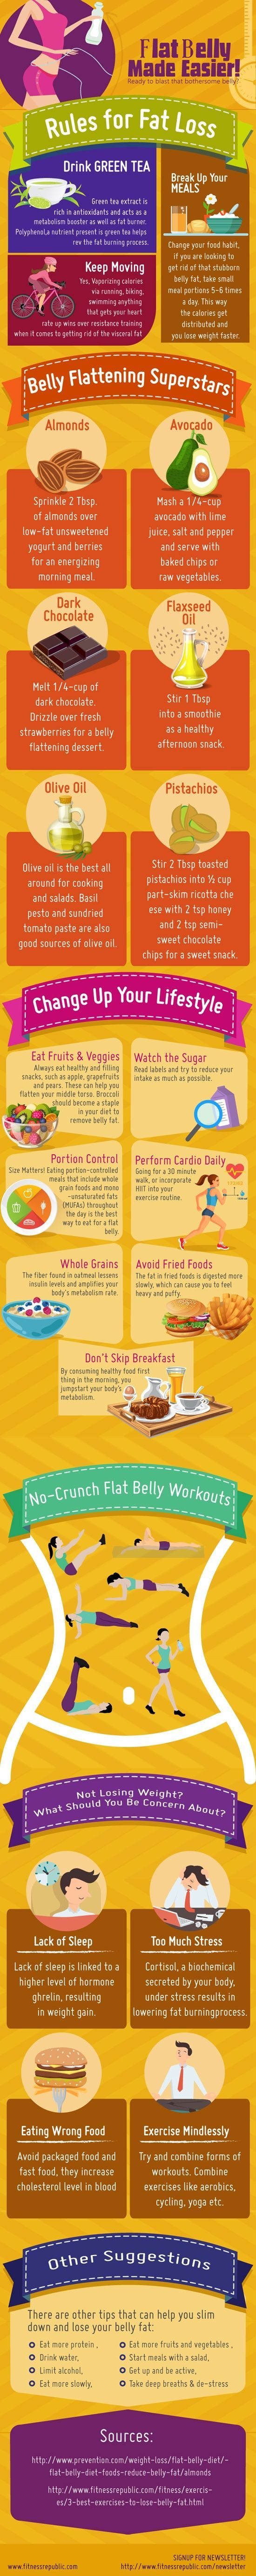 best menus fitness exercises images on pinterest circuit